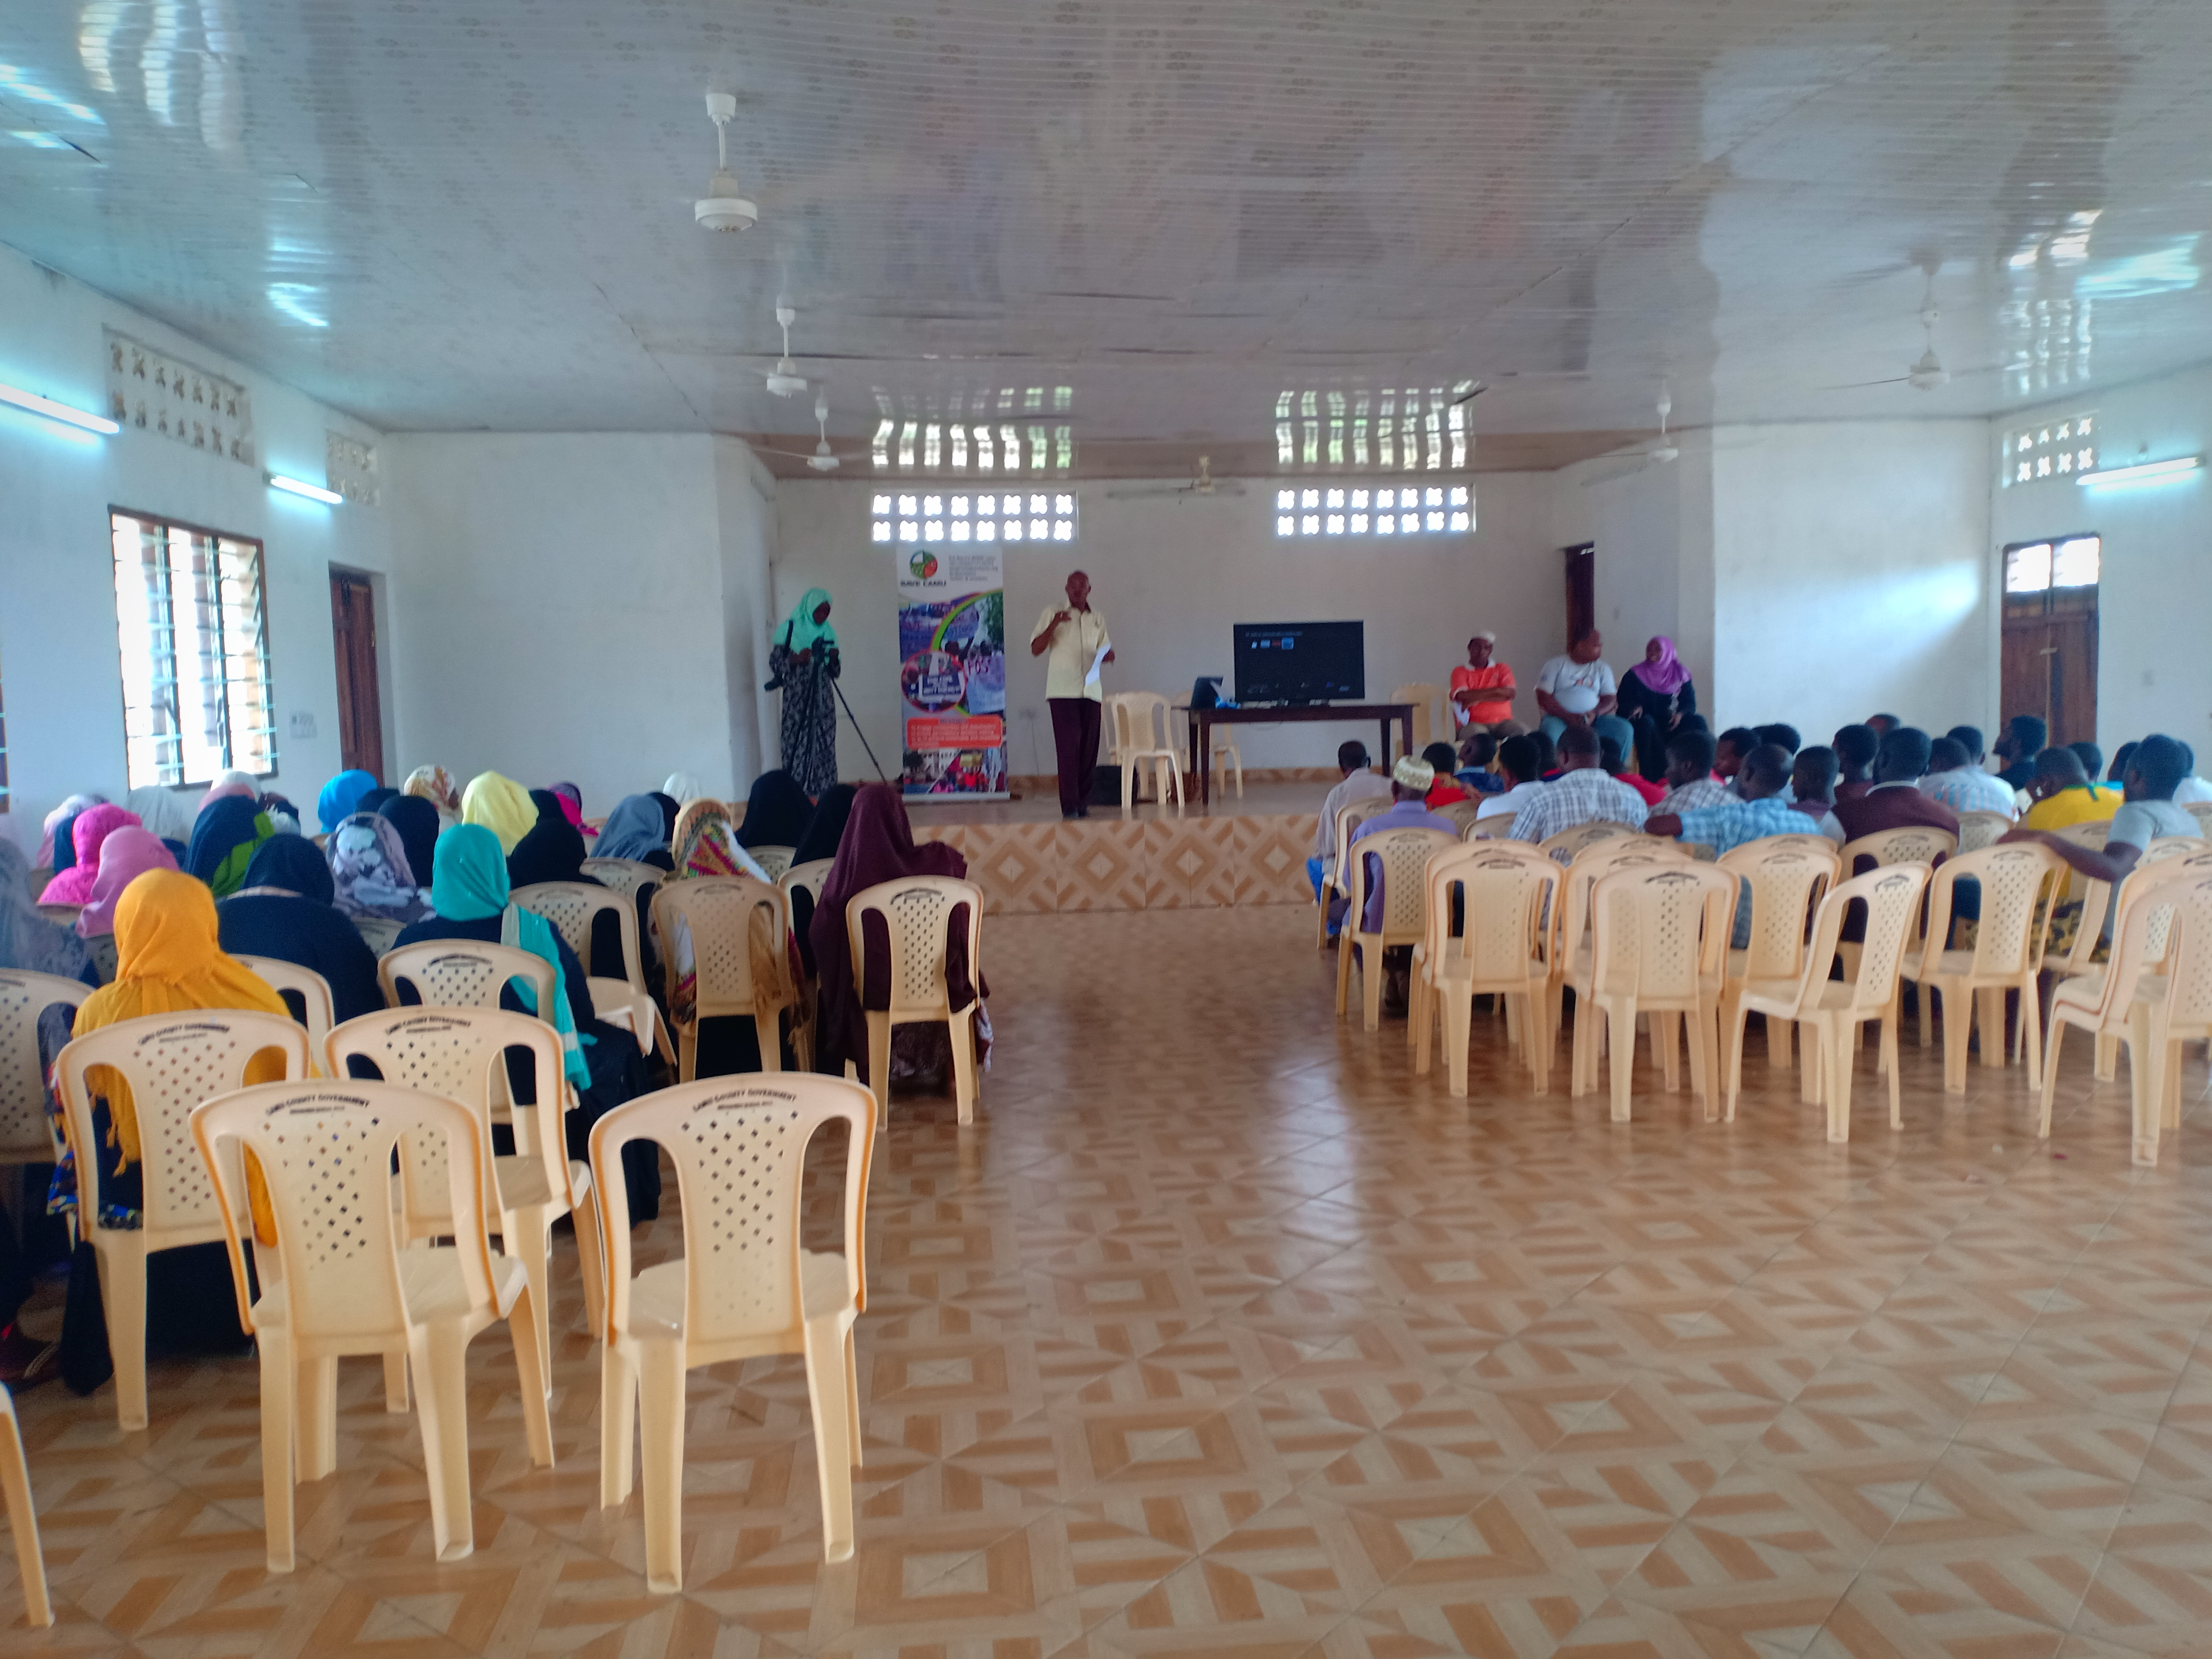 SAVE LAMU EDUCATES COMMUNITIES ON THE EFFECTS OF COAL PROJECT THROUGH VIDEO SCREENING